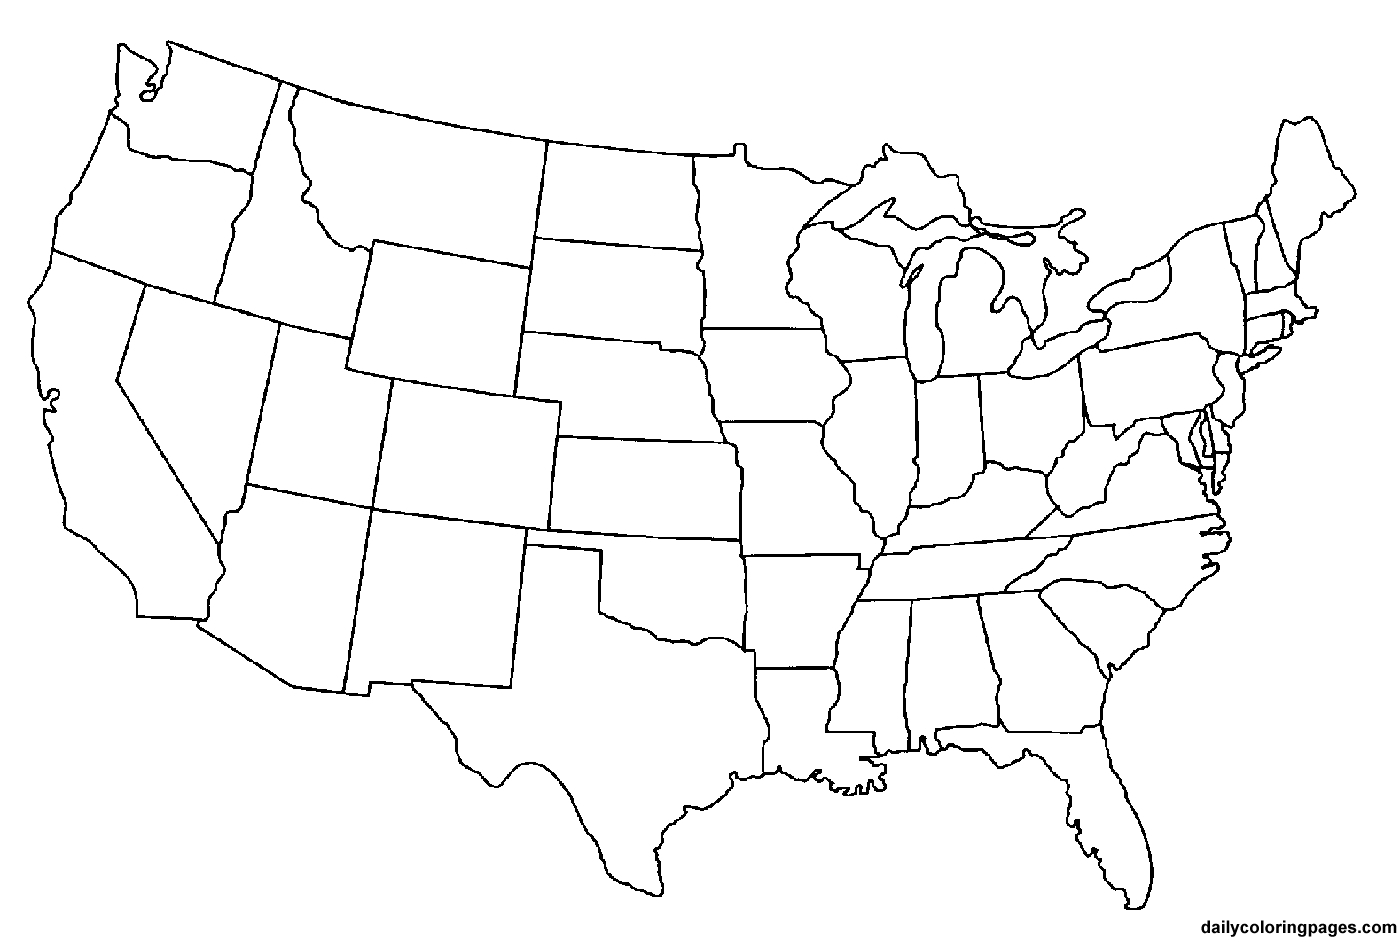 Systematic Transparent Background Us Map Png Usa Outline.